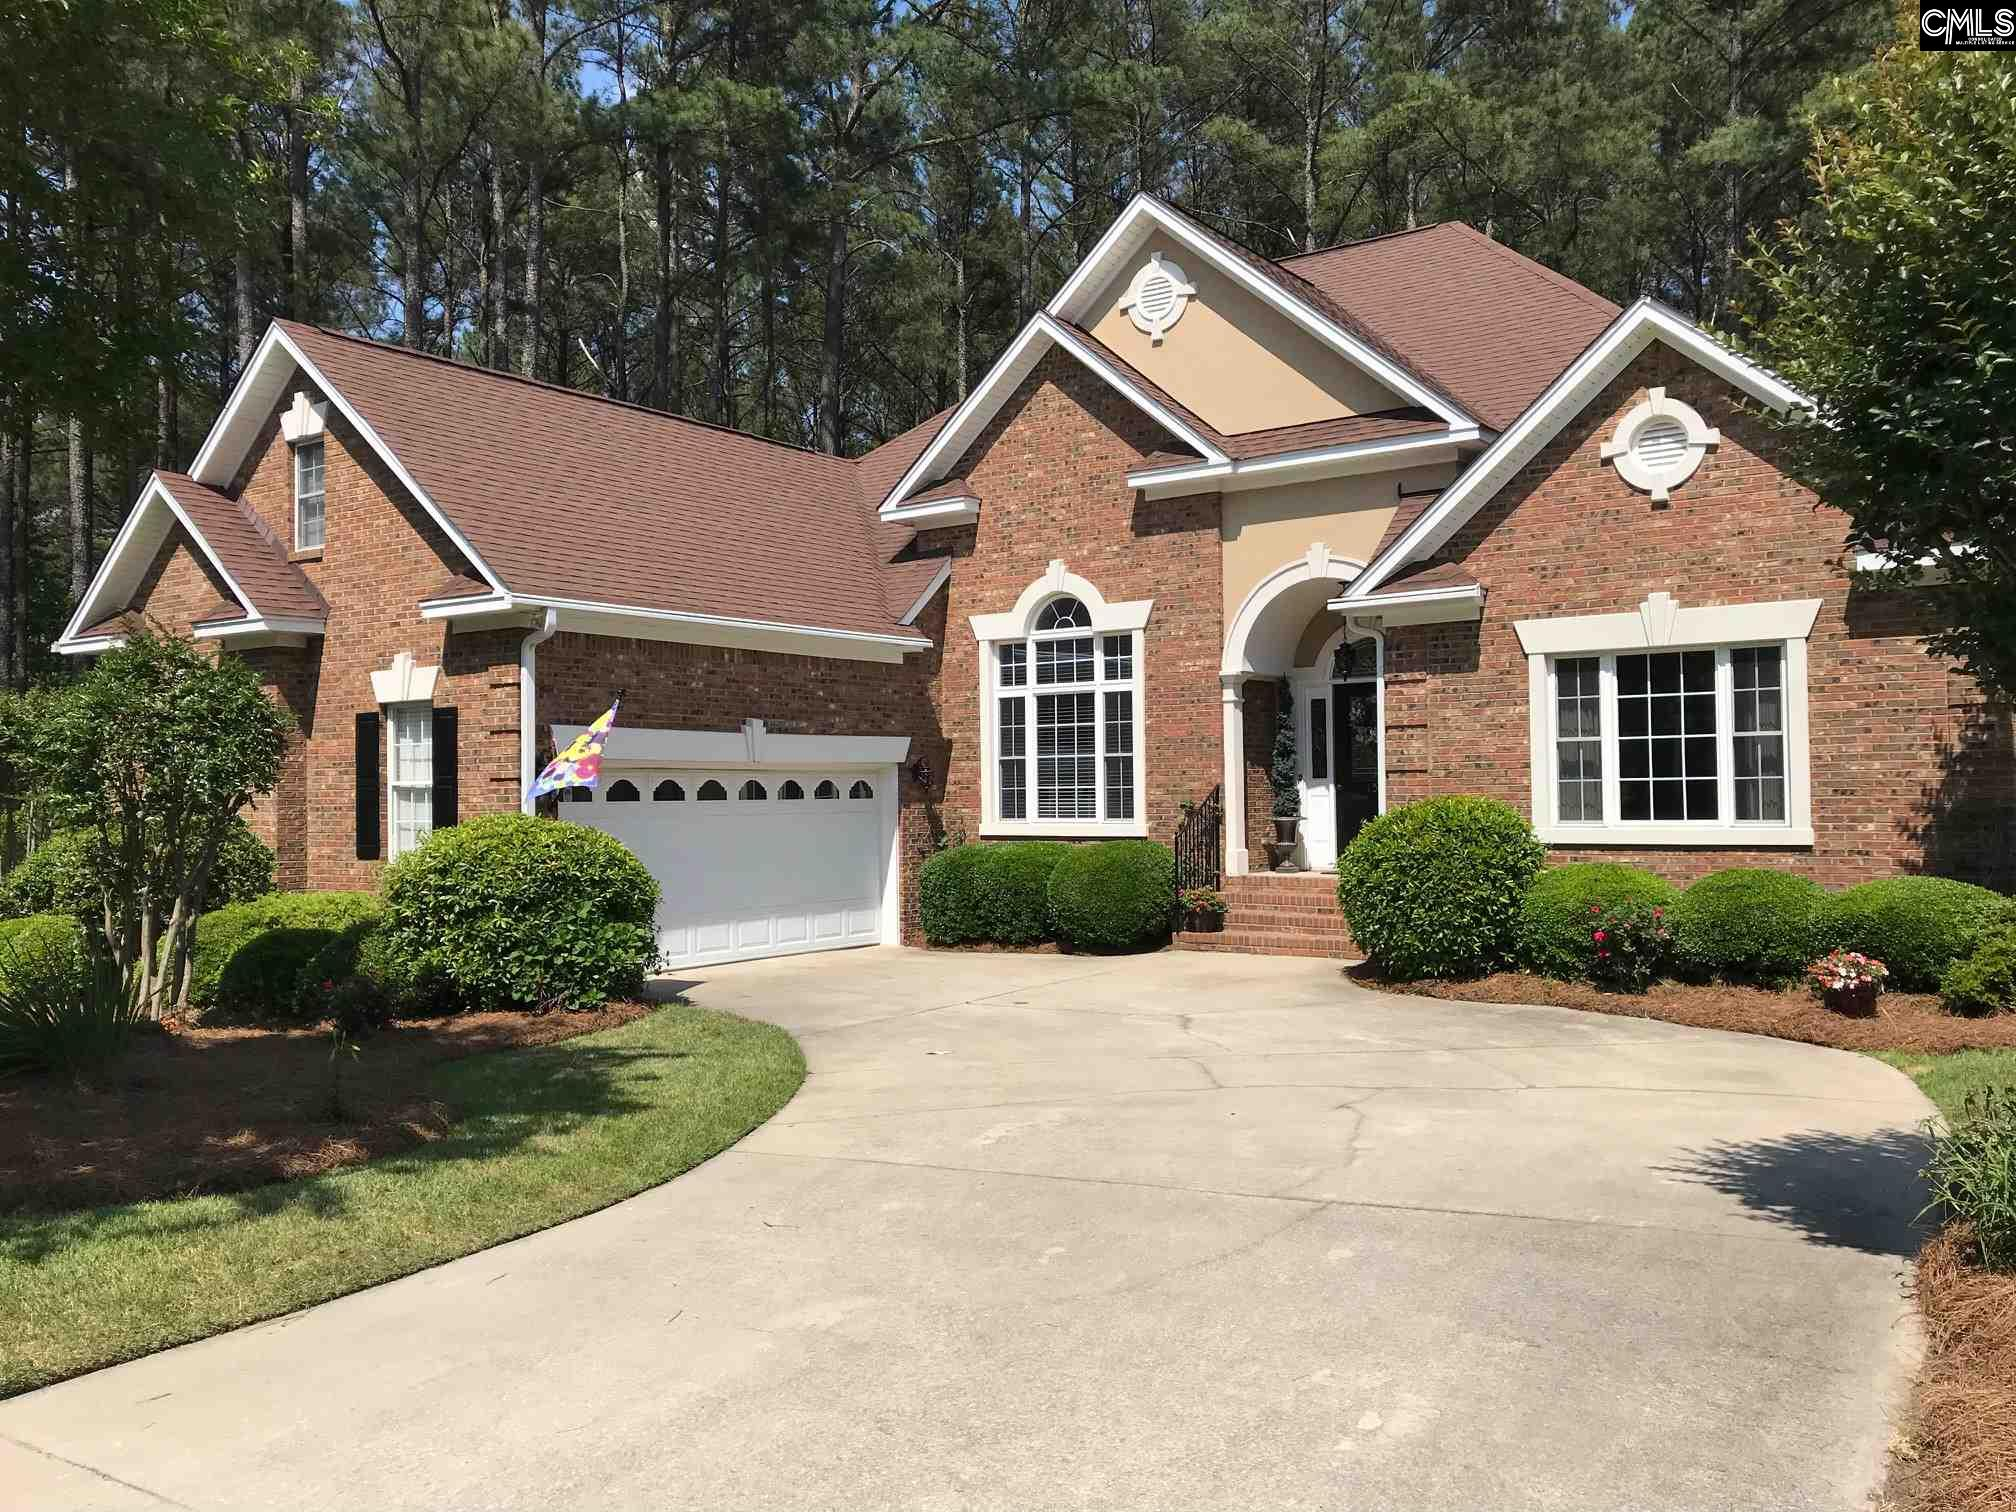 152 Harbour Watch Leesville, SC 29070-7399